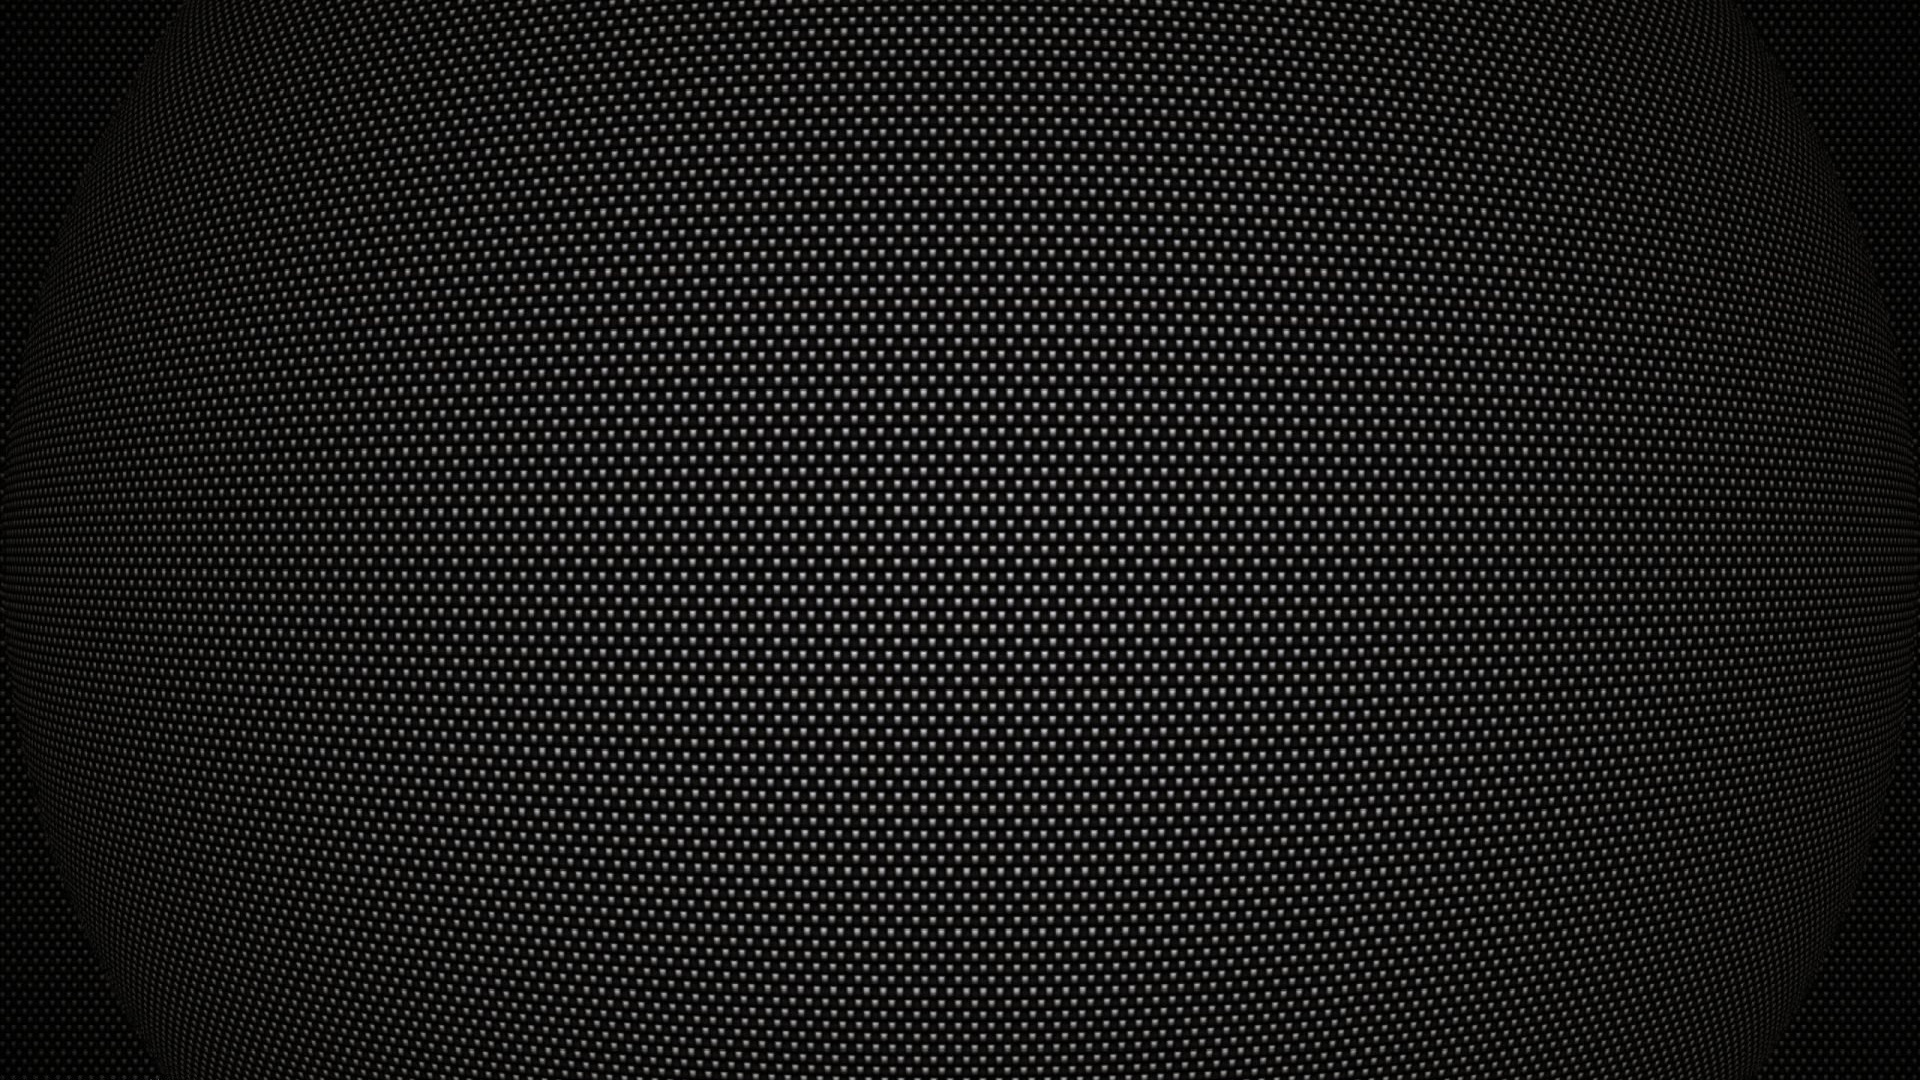 Plain black wallpapers hd wallpapersafari Plain white wallpaper for walls